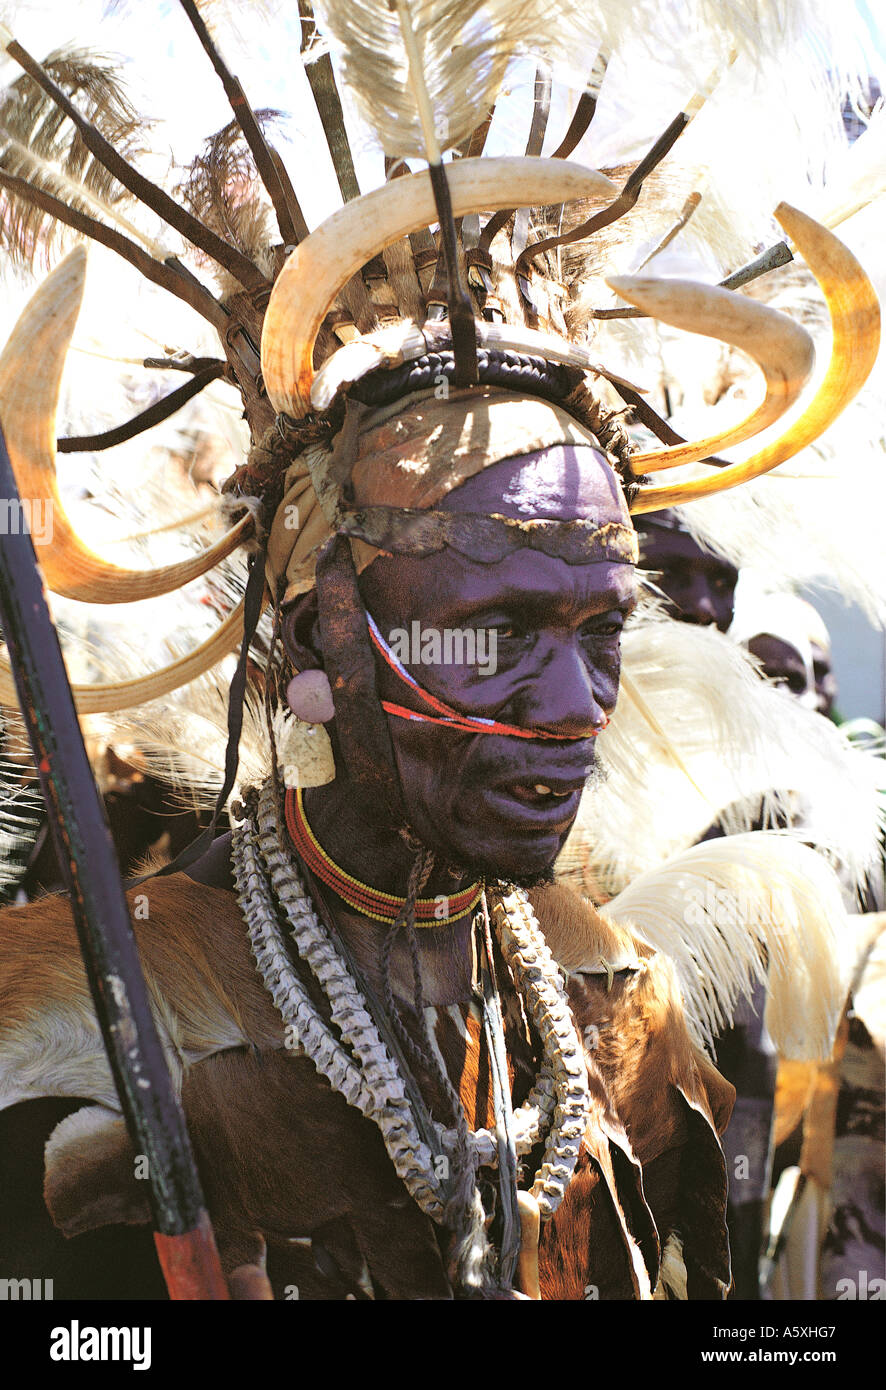 Luo warrior elder with spectacular traditional dress and headdress of ostrich feathers and hippo tusks Kisumu Kenya East Africa - Stock Image